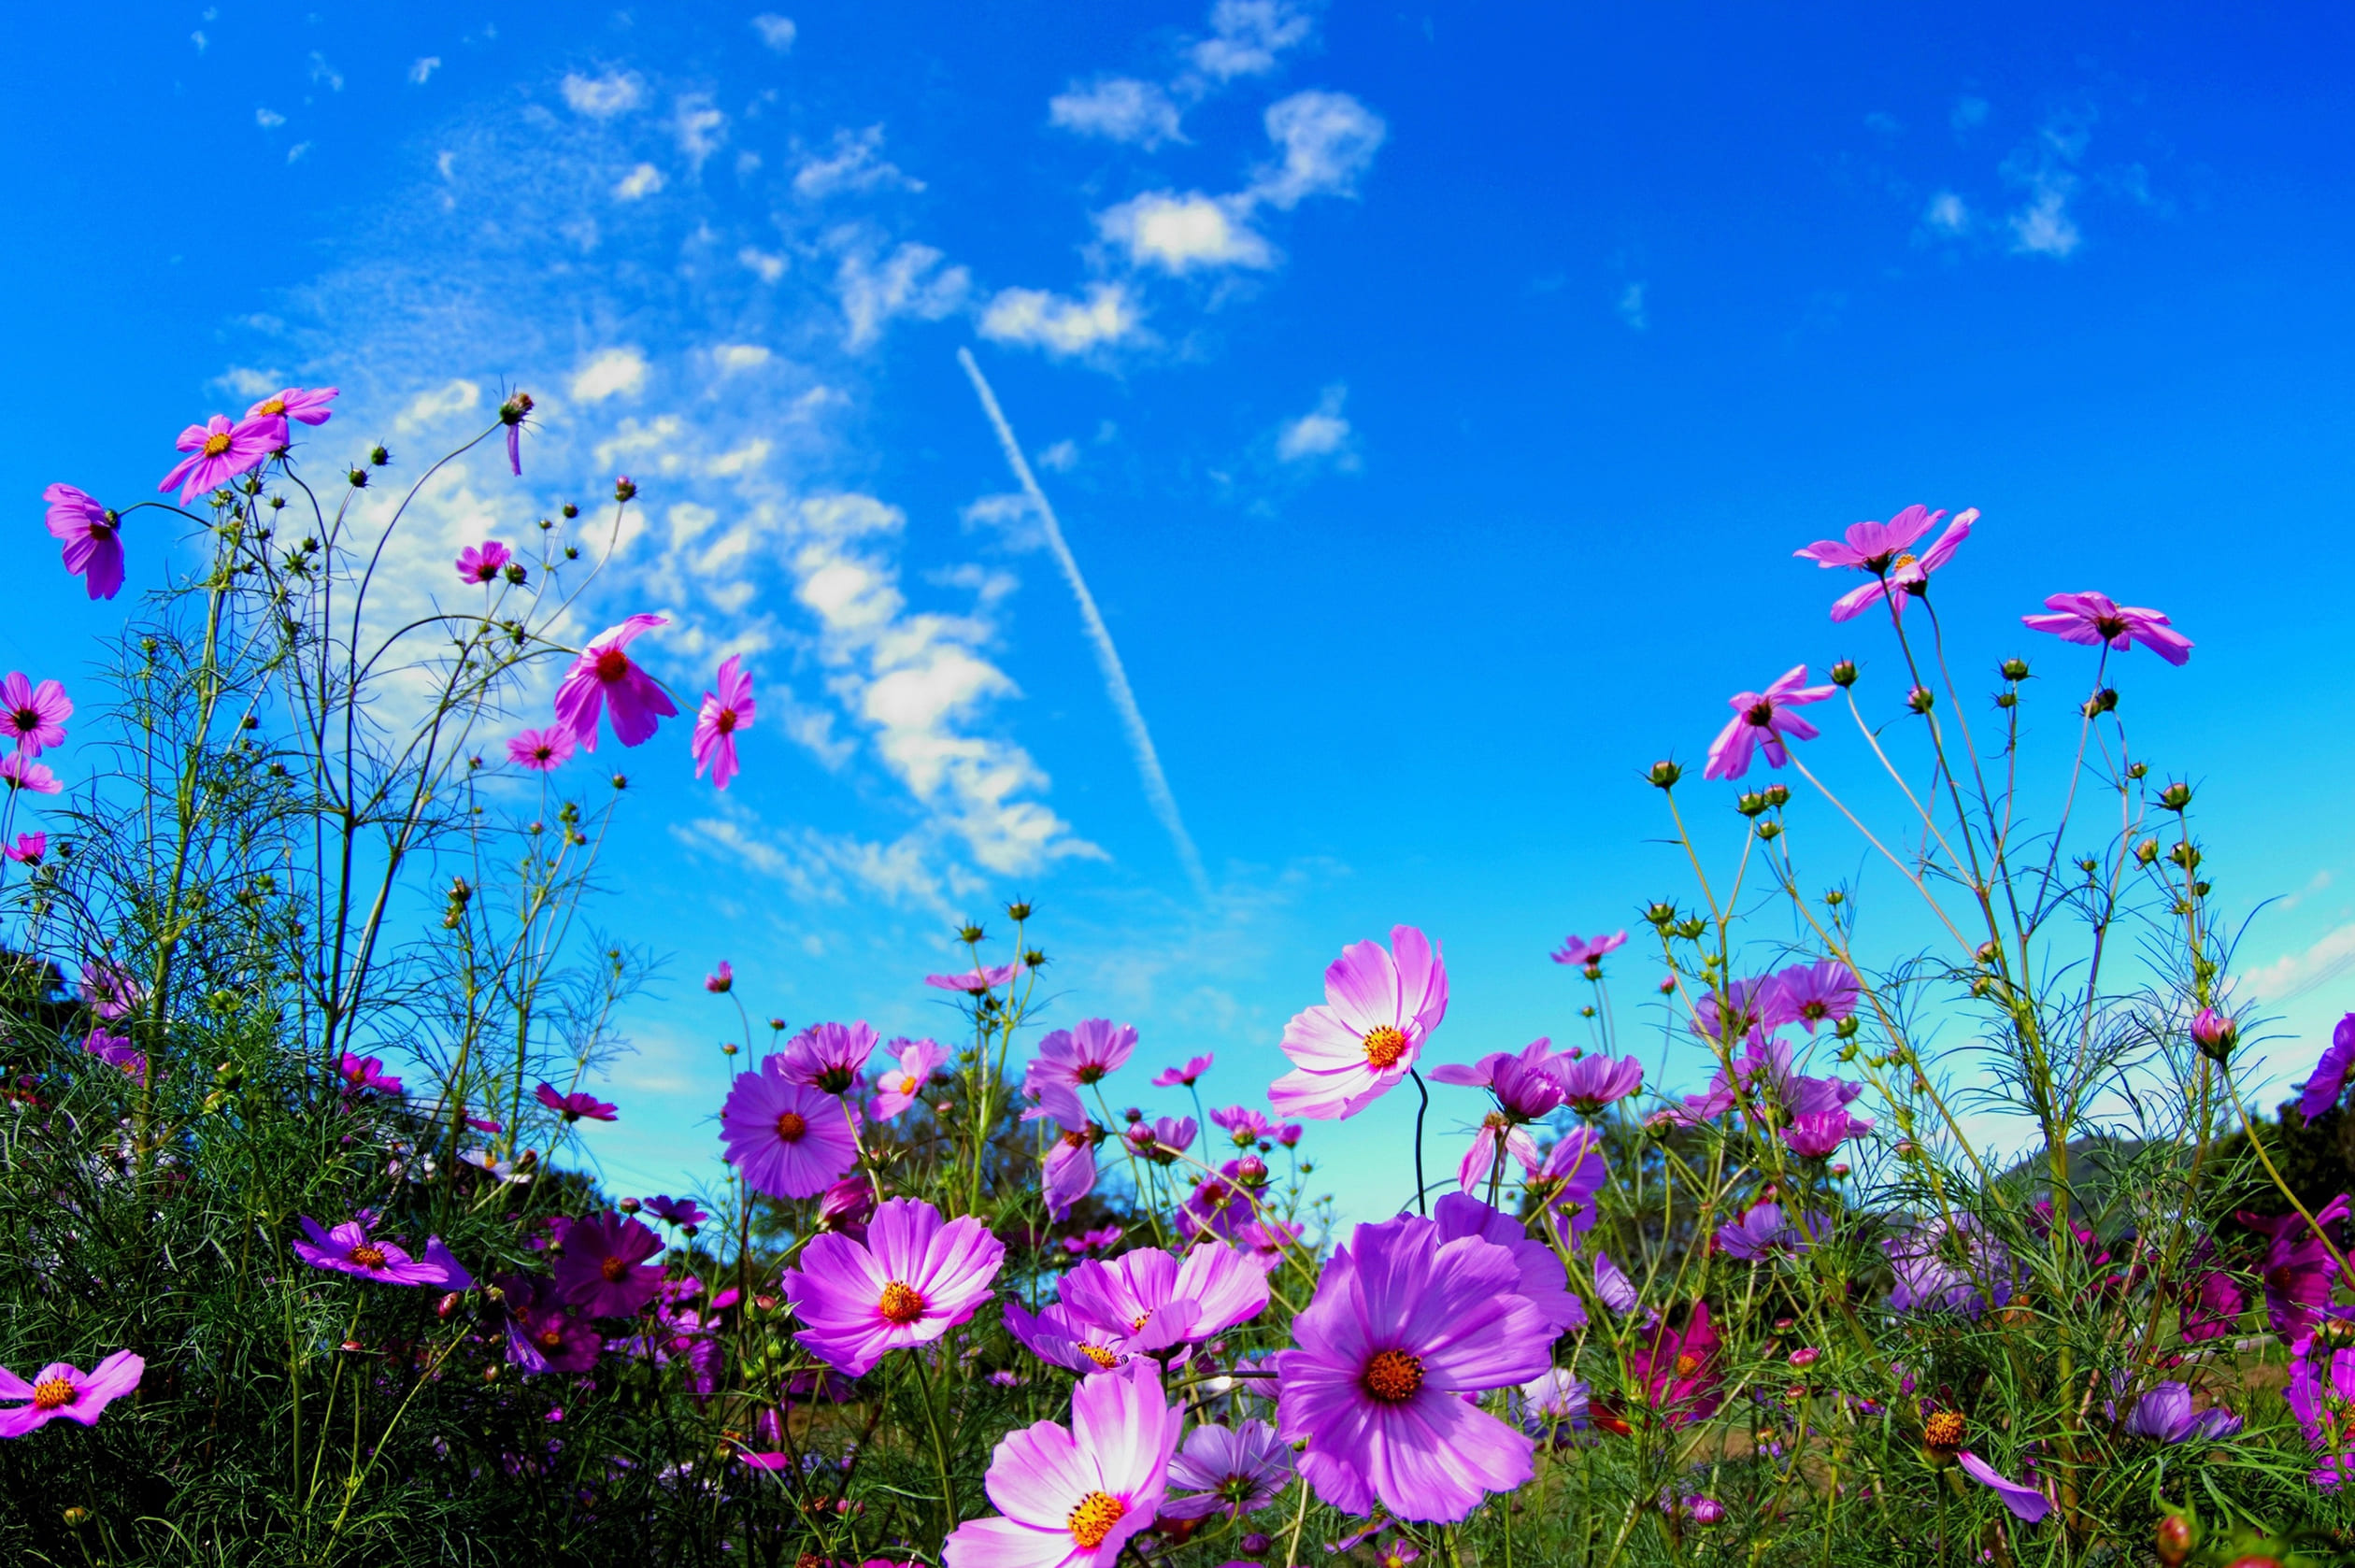 Images of Beautiful Summer Nature. 100 Photos for Your Desktop